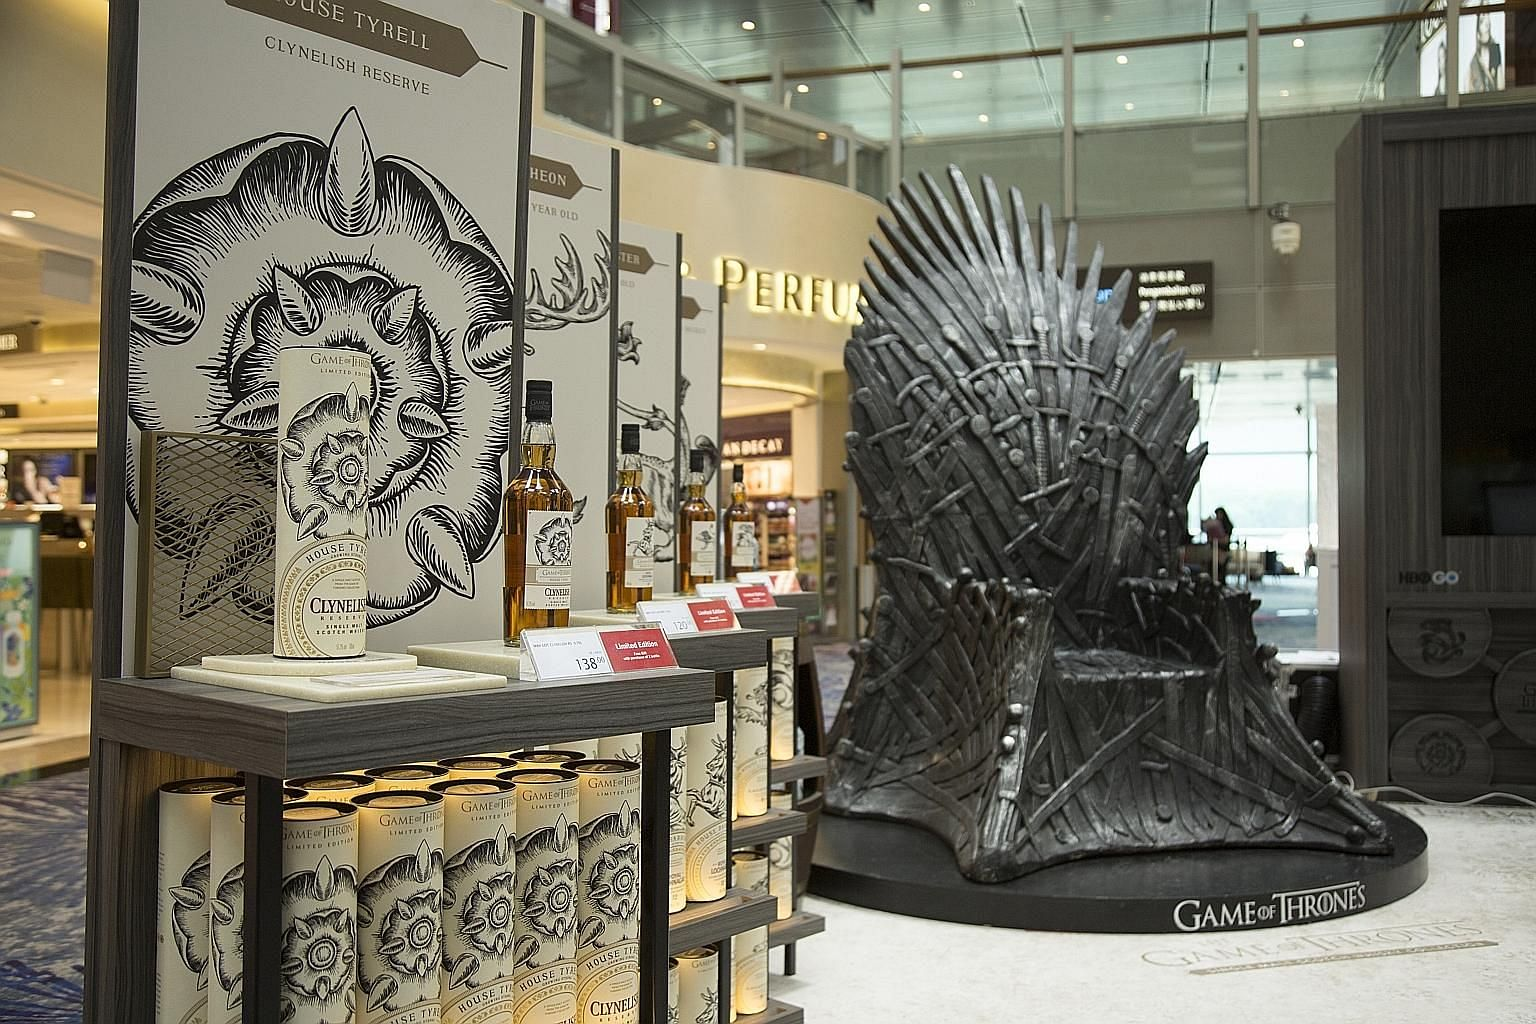 Sample a limited-edition collection of Game Of Thrones single malt Scotch whiskies at the departure hall of Terminal 3 and get your picture taken seated on a life-size Iron Throne.